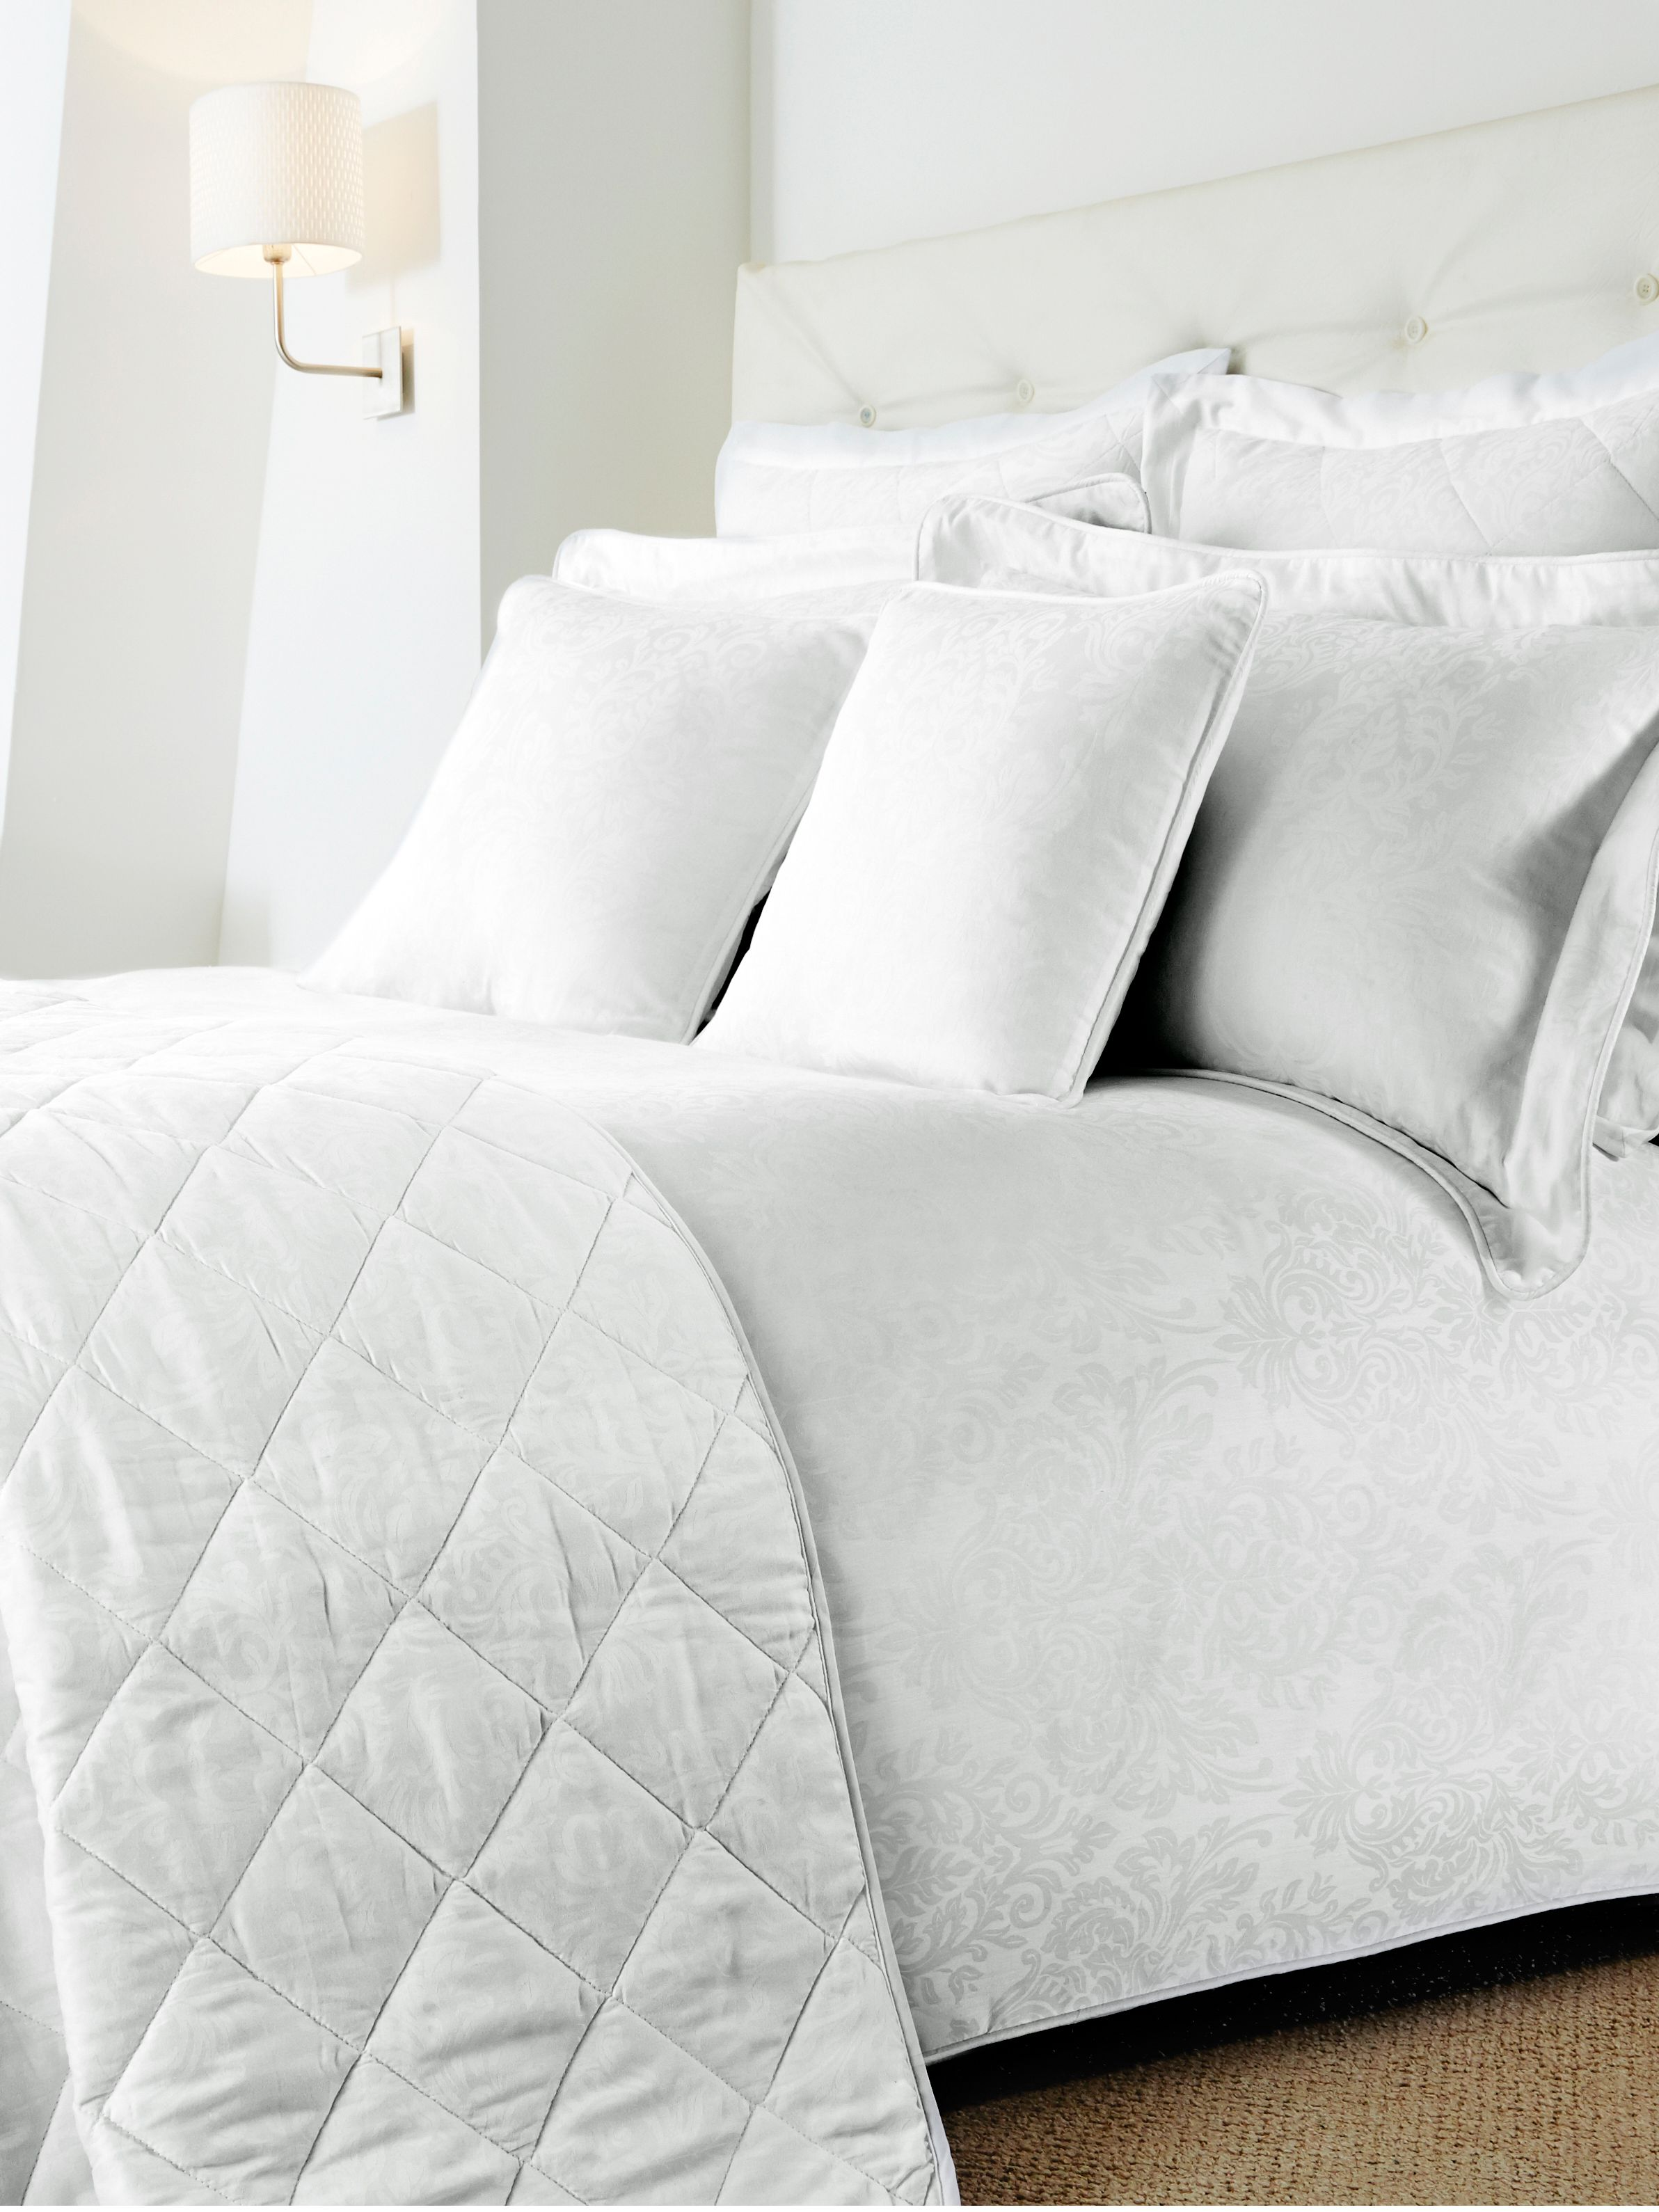 Dress your bed in style with our elegant duvet cover—whether you're looking for a farmhouse duvet covers, bohemian duvet covers, or more modern duvet covers, we've got your back. Check out our wide range of eye-catching duvet covers, there's sure to be a perfect fit for you.